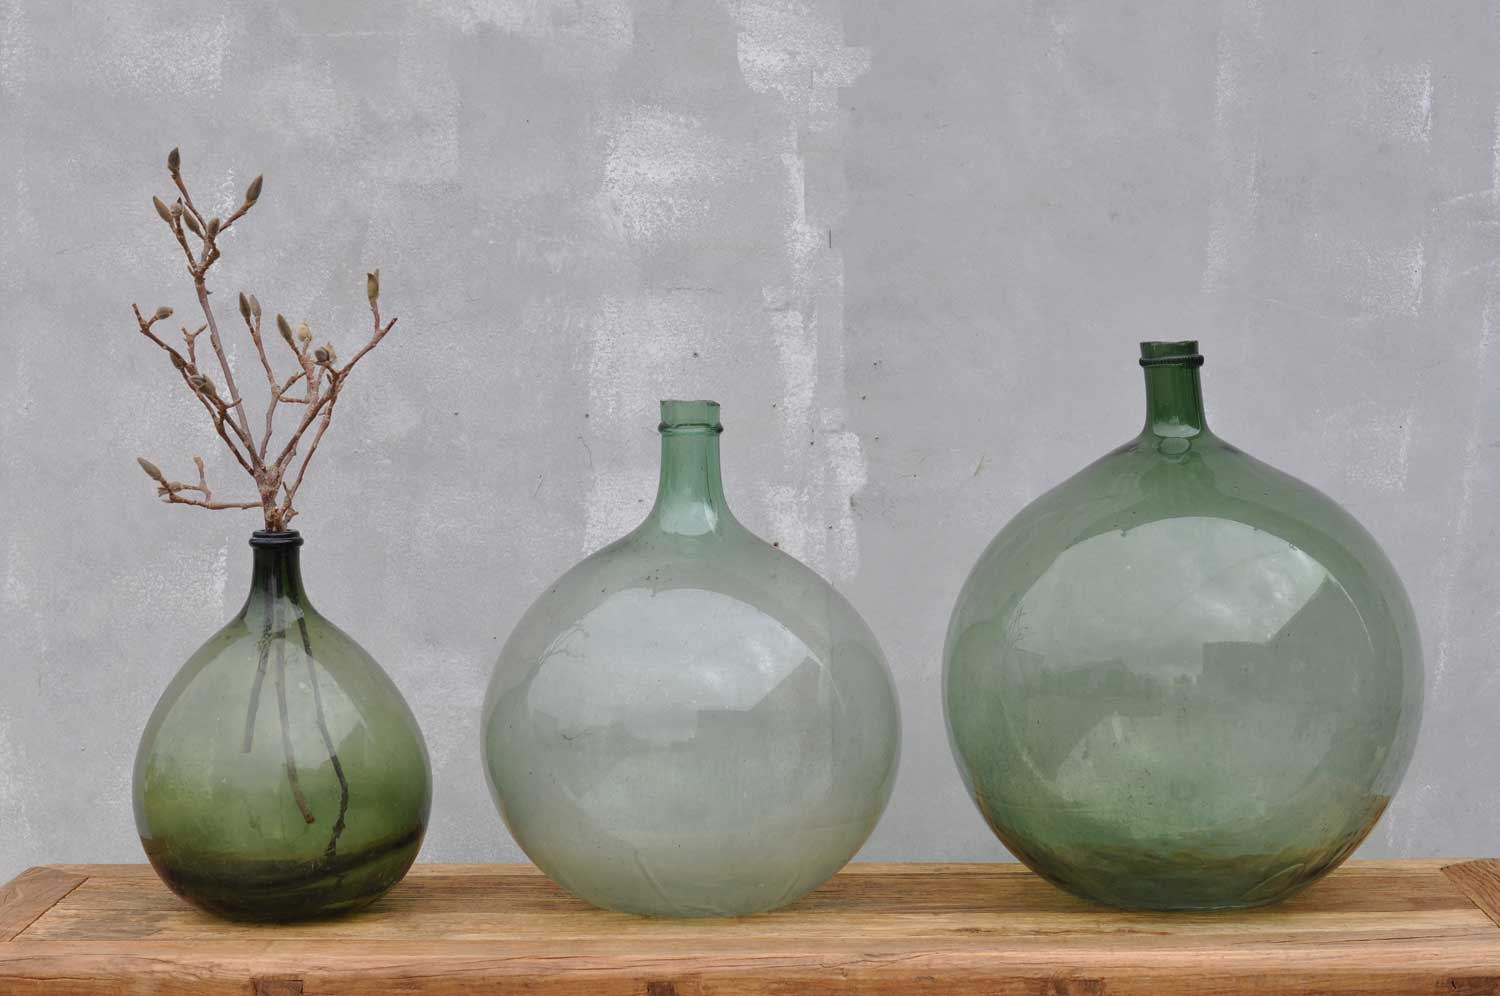 French Demijohn Carboy Wine Vessel Vase